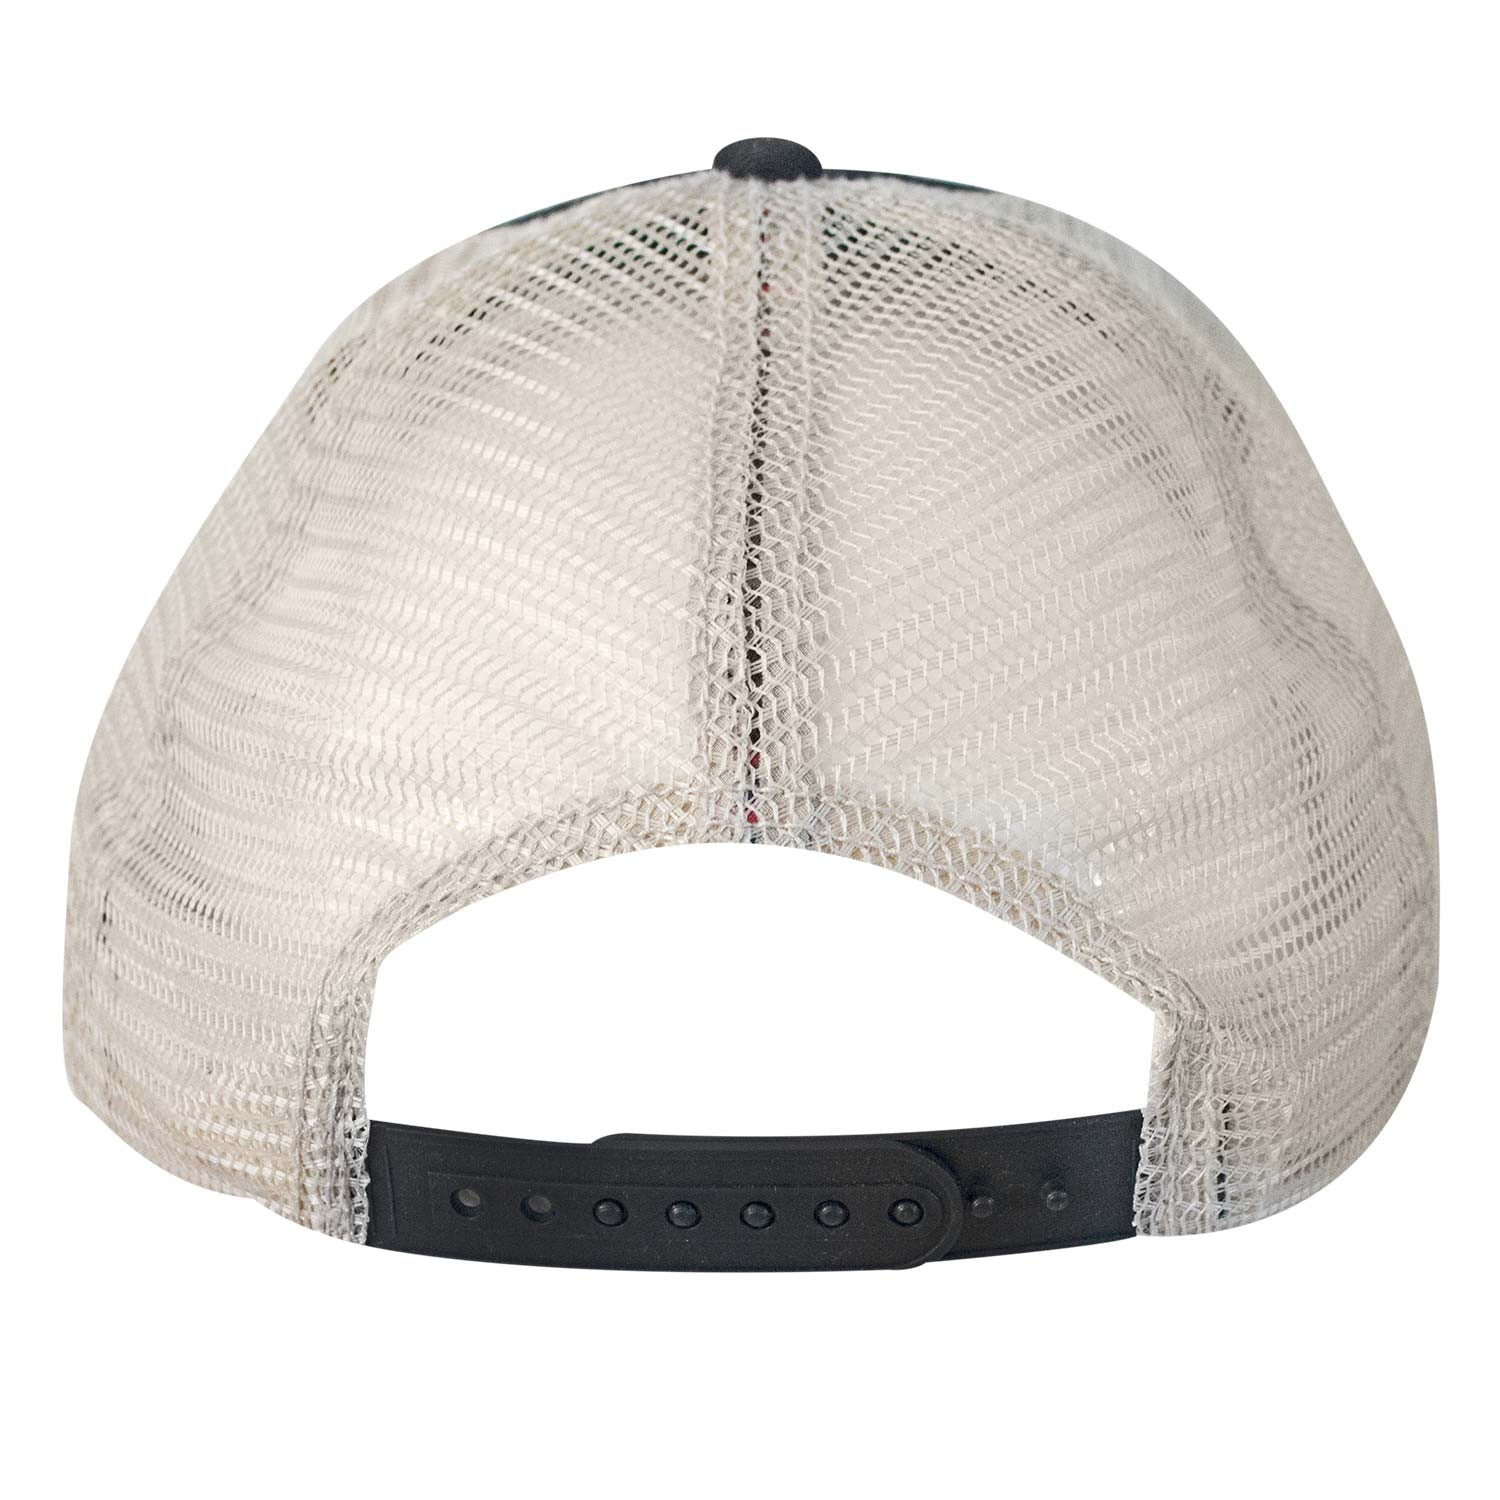 Lucky Lager Vintage Mesh Hat